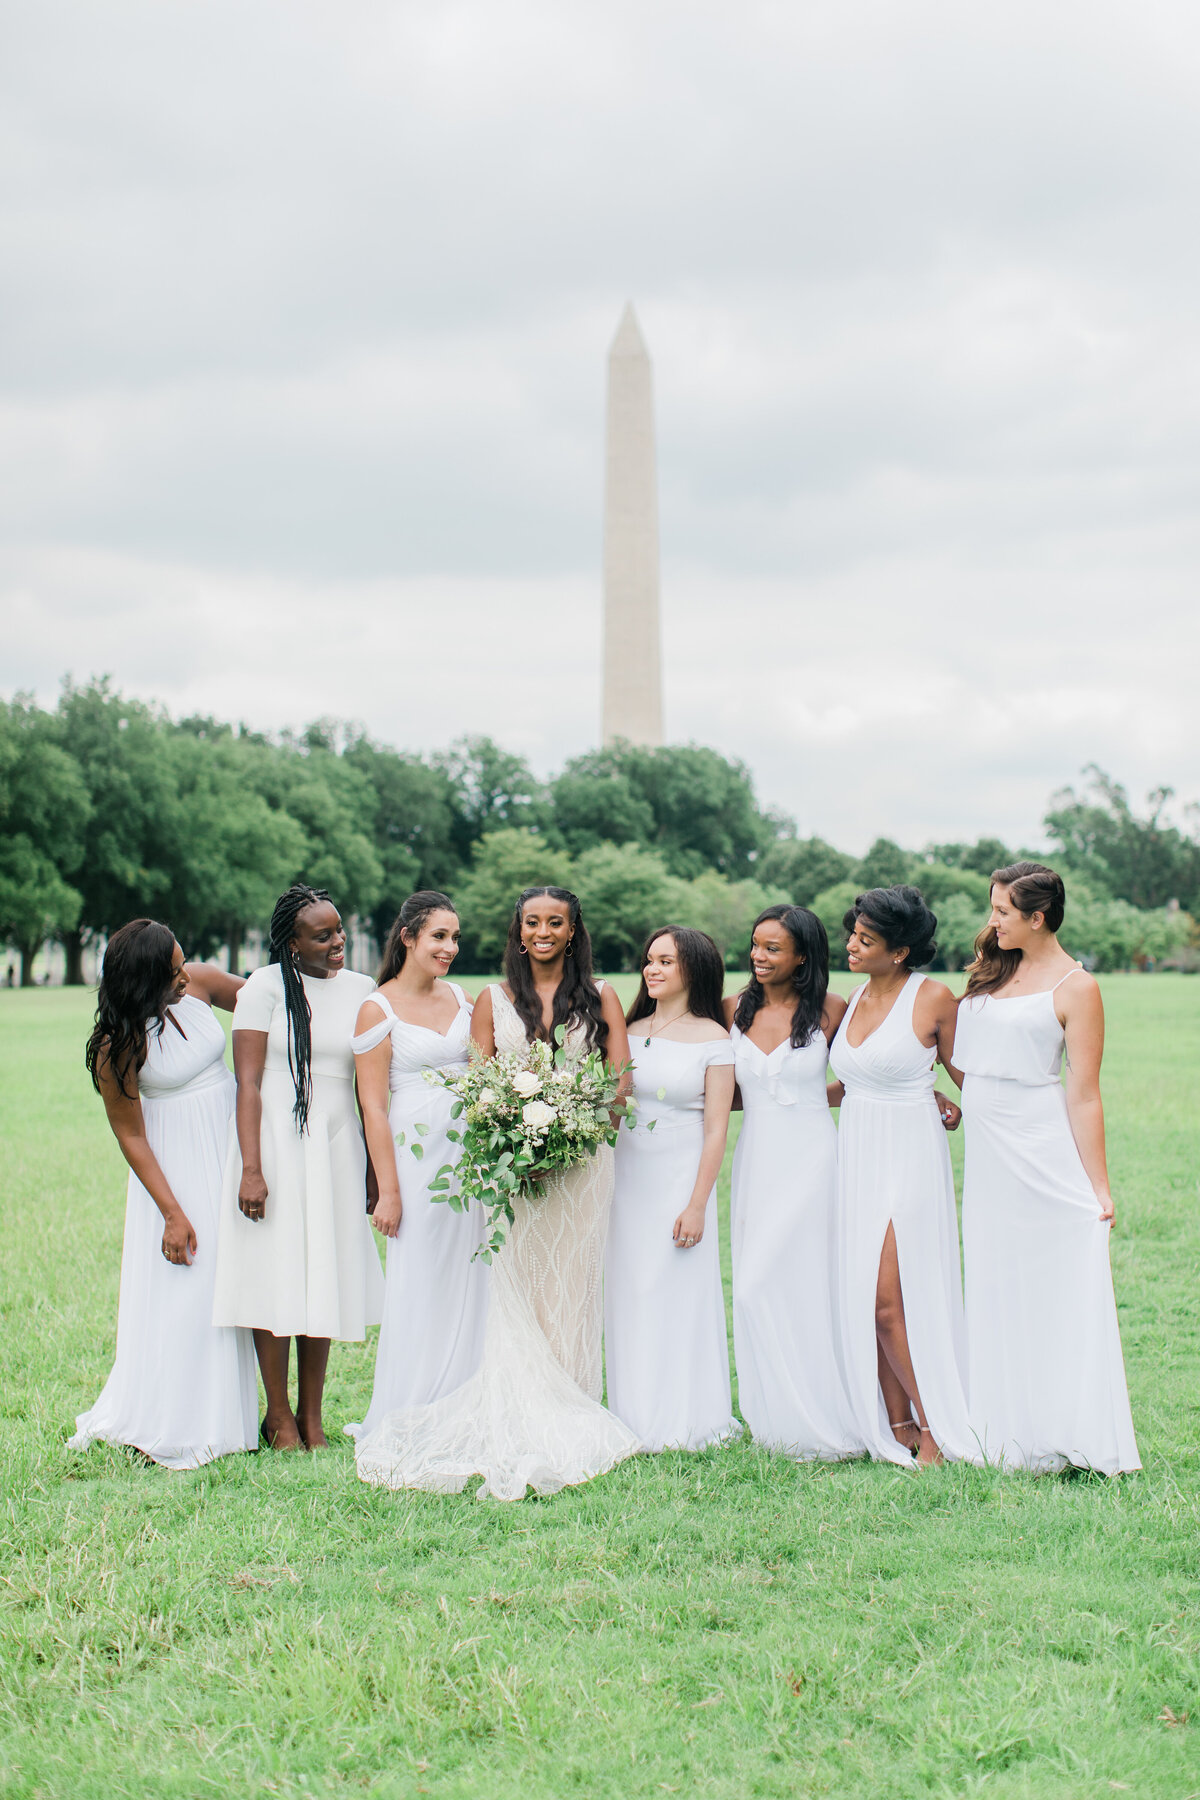 Solomon_Tkeyah_Micro_COVID_Wedding_Washington_DC_War_Memorial_MLK_Memorial_Linoln_Memorial_Angelika_Johns_Photography-4862